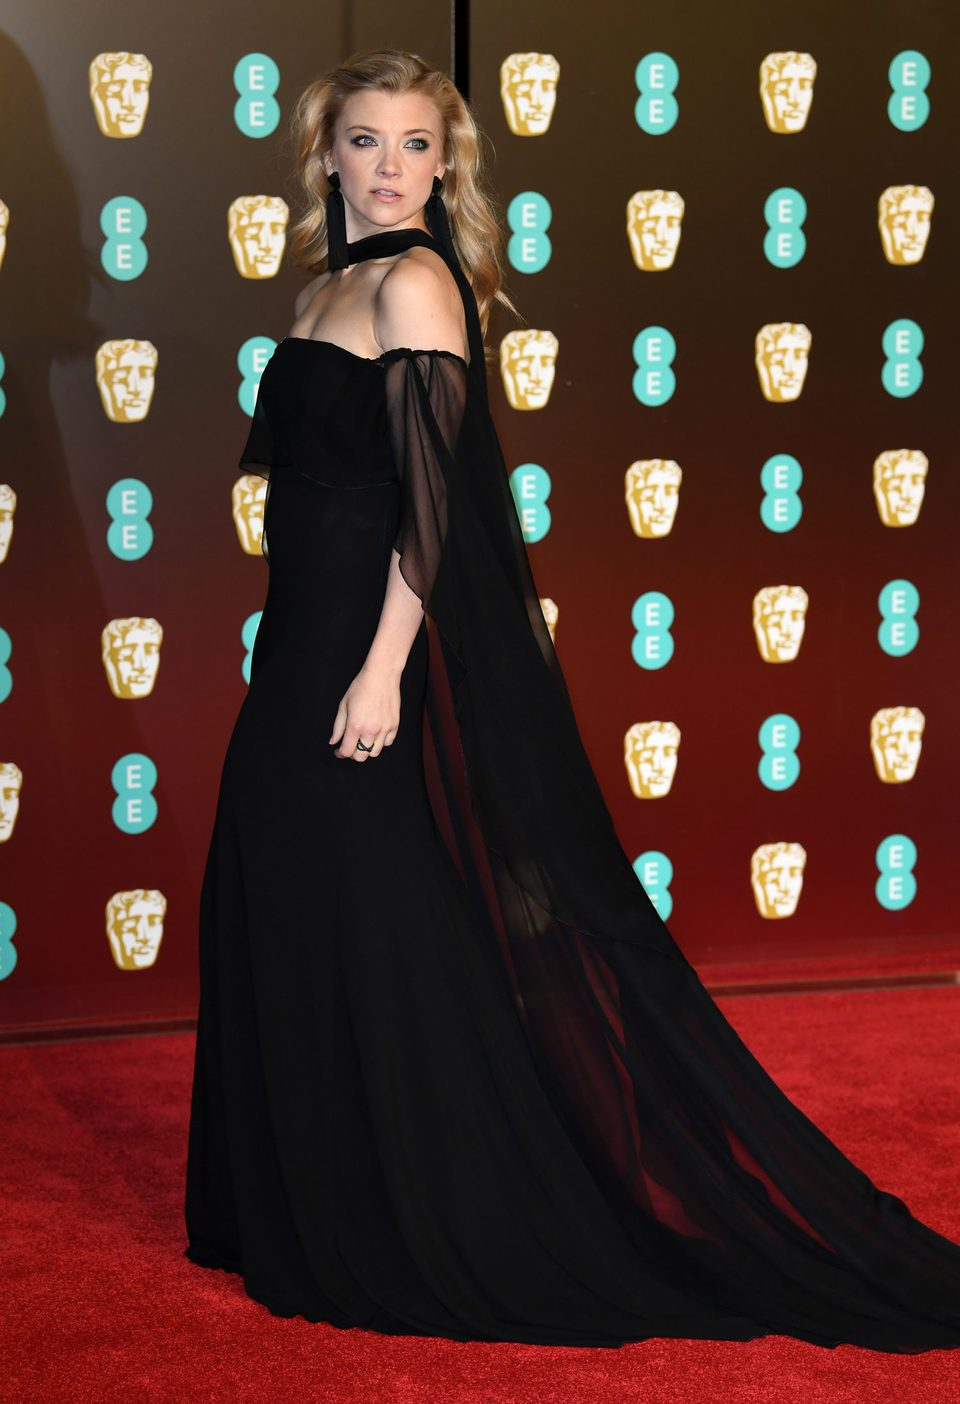 Natalie Dormer at the BAFTAs 2018 red carpet